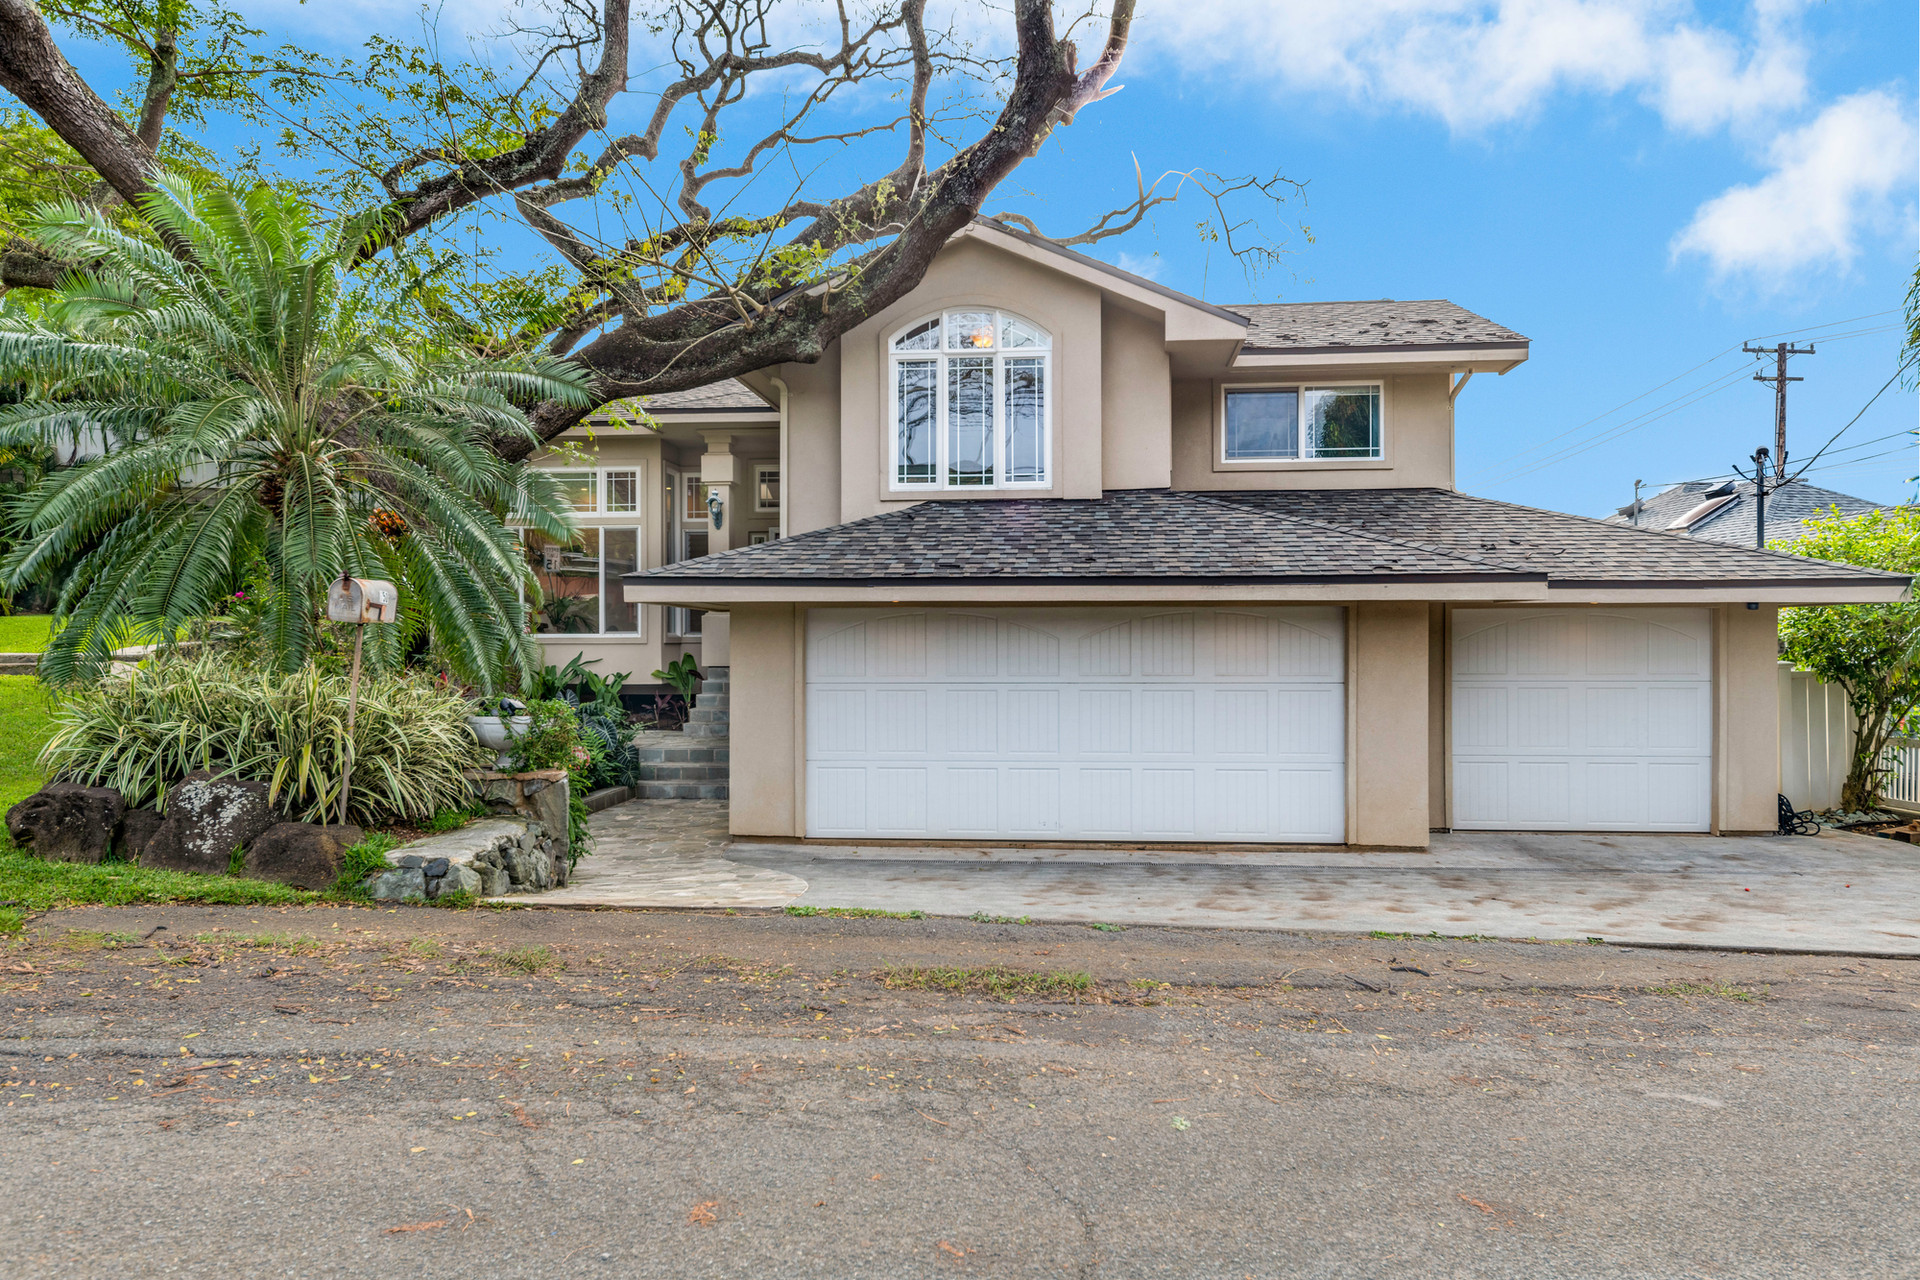 5 Bed | 3 Bath | Kaneohe